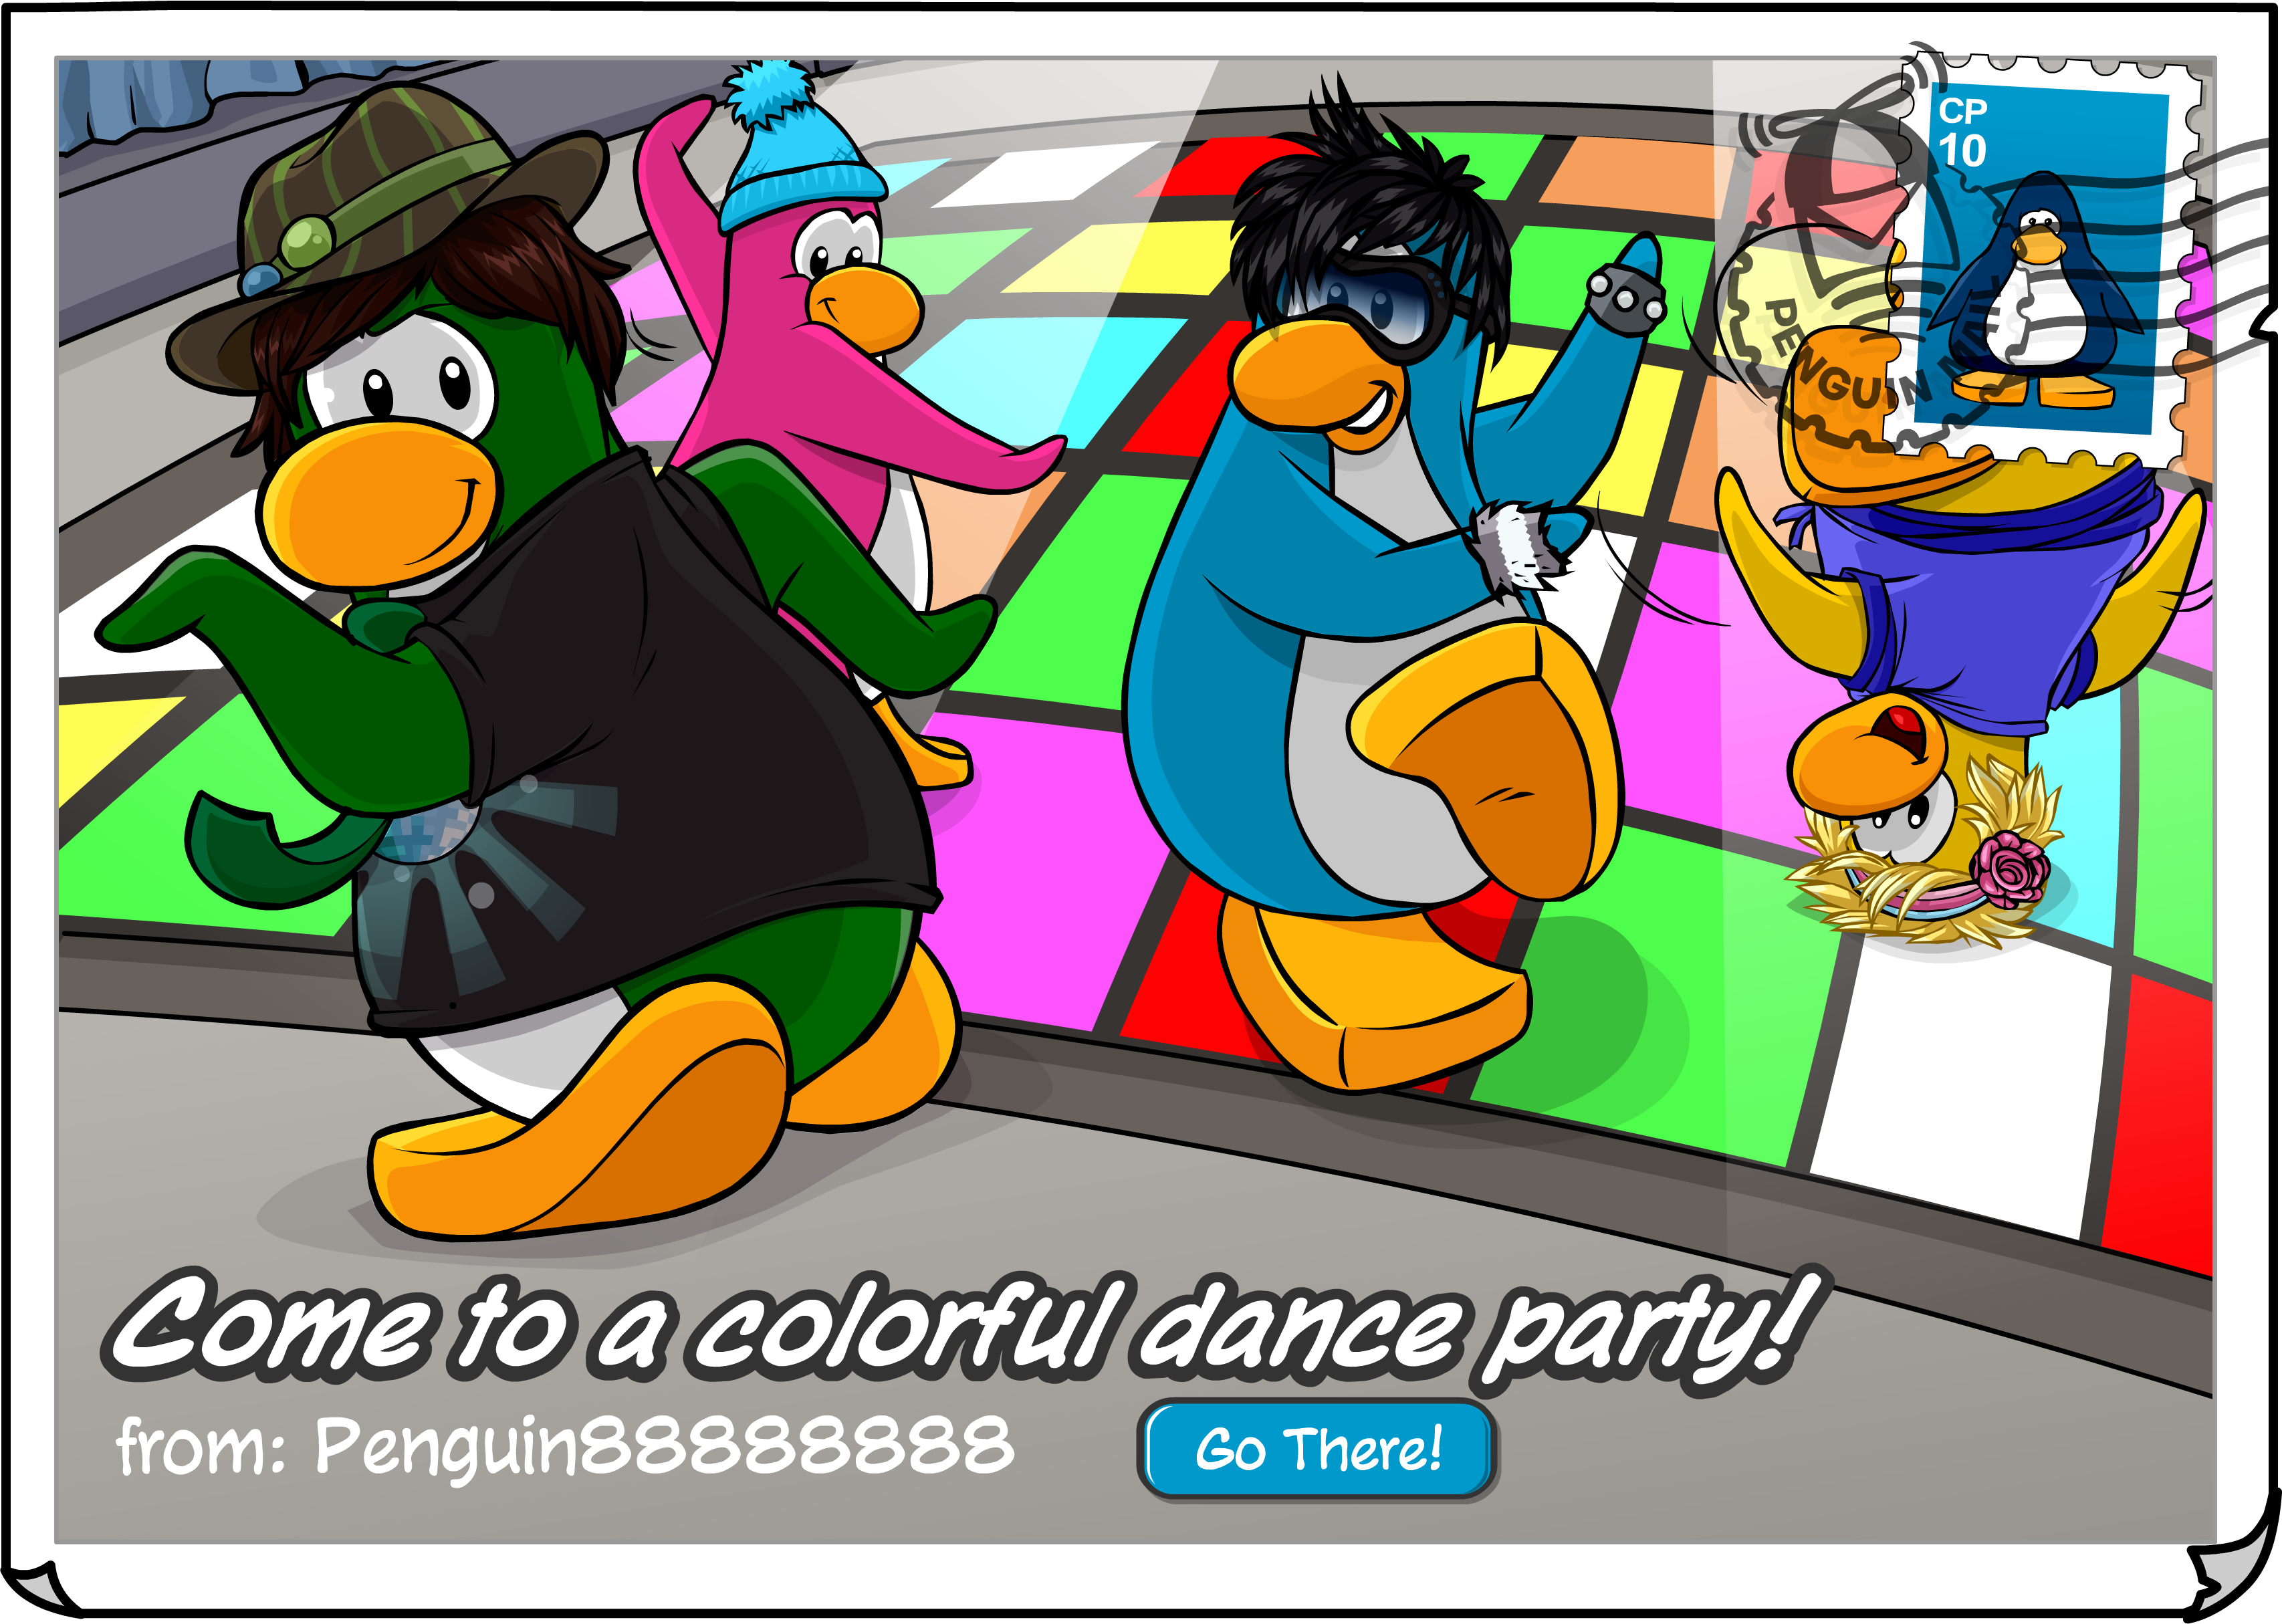 File:Dance Party postcard (ID 49).png